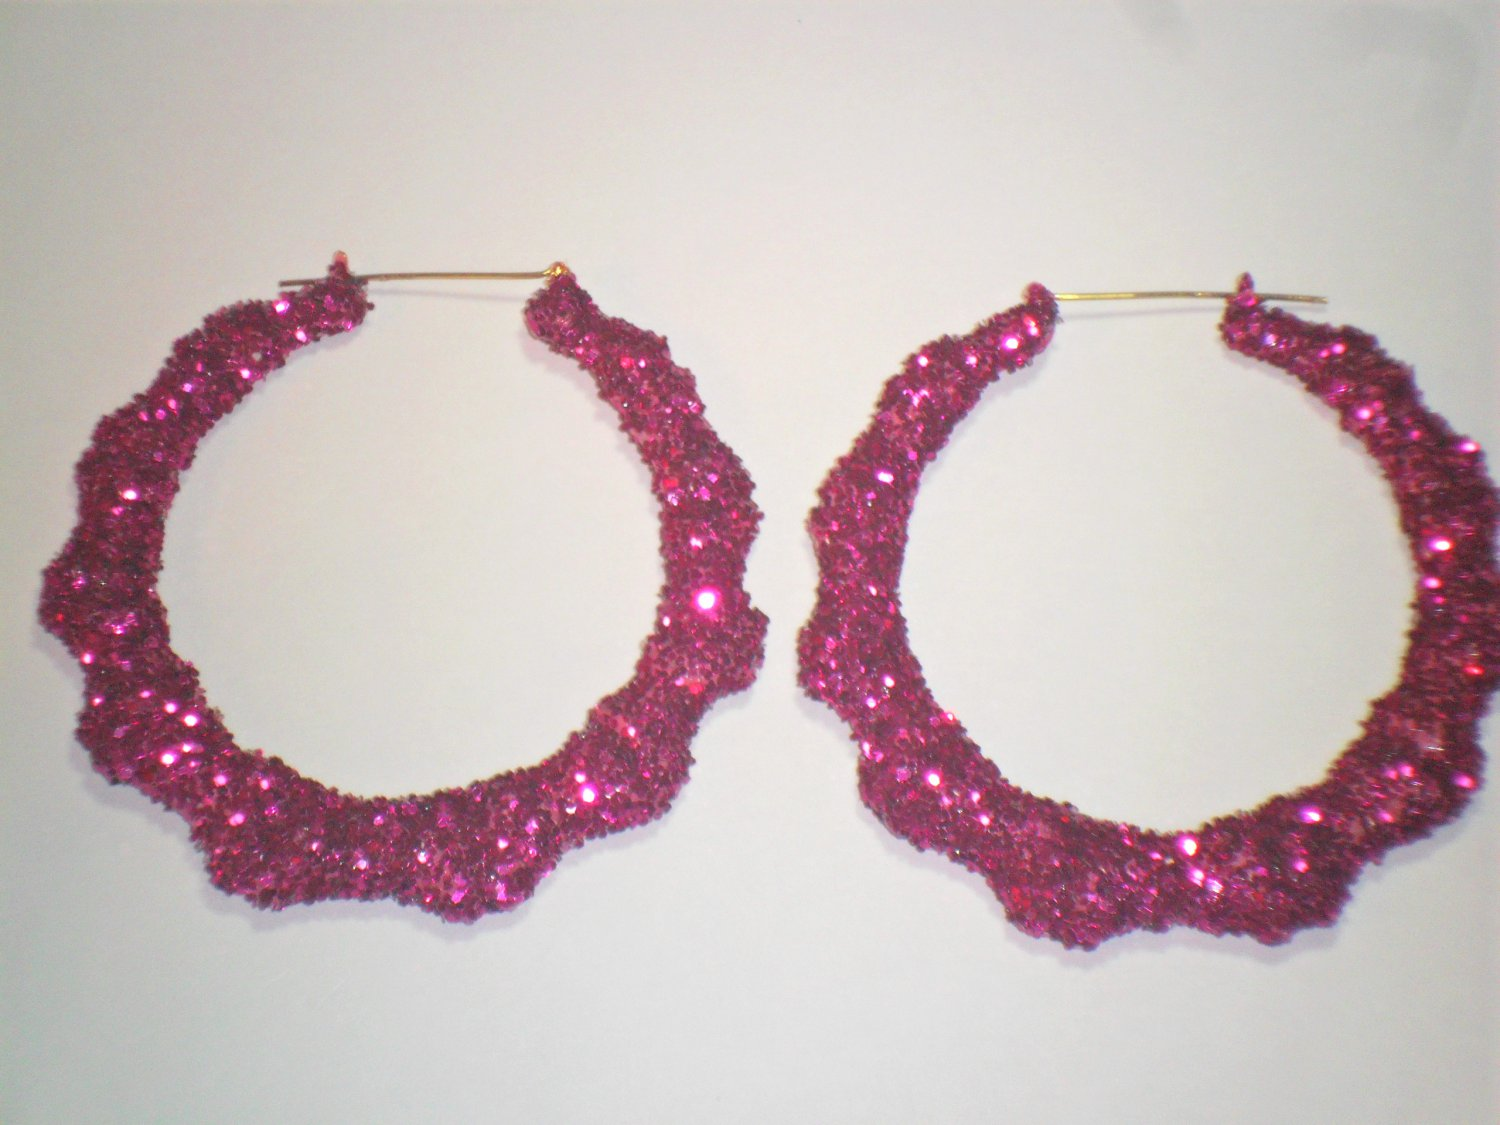 Bamboo Hoop Bling Bling Earrings Fuchsia Buy 1 Get 1 Free Mix or Match